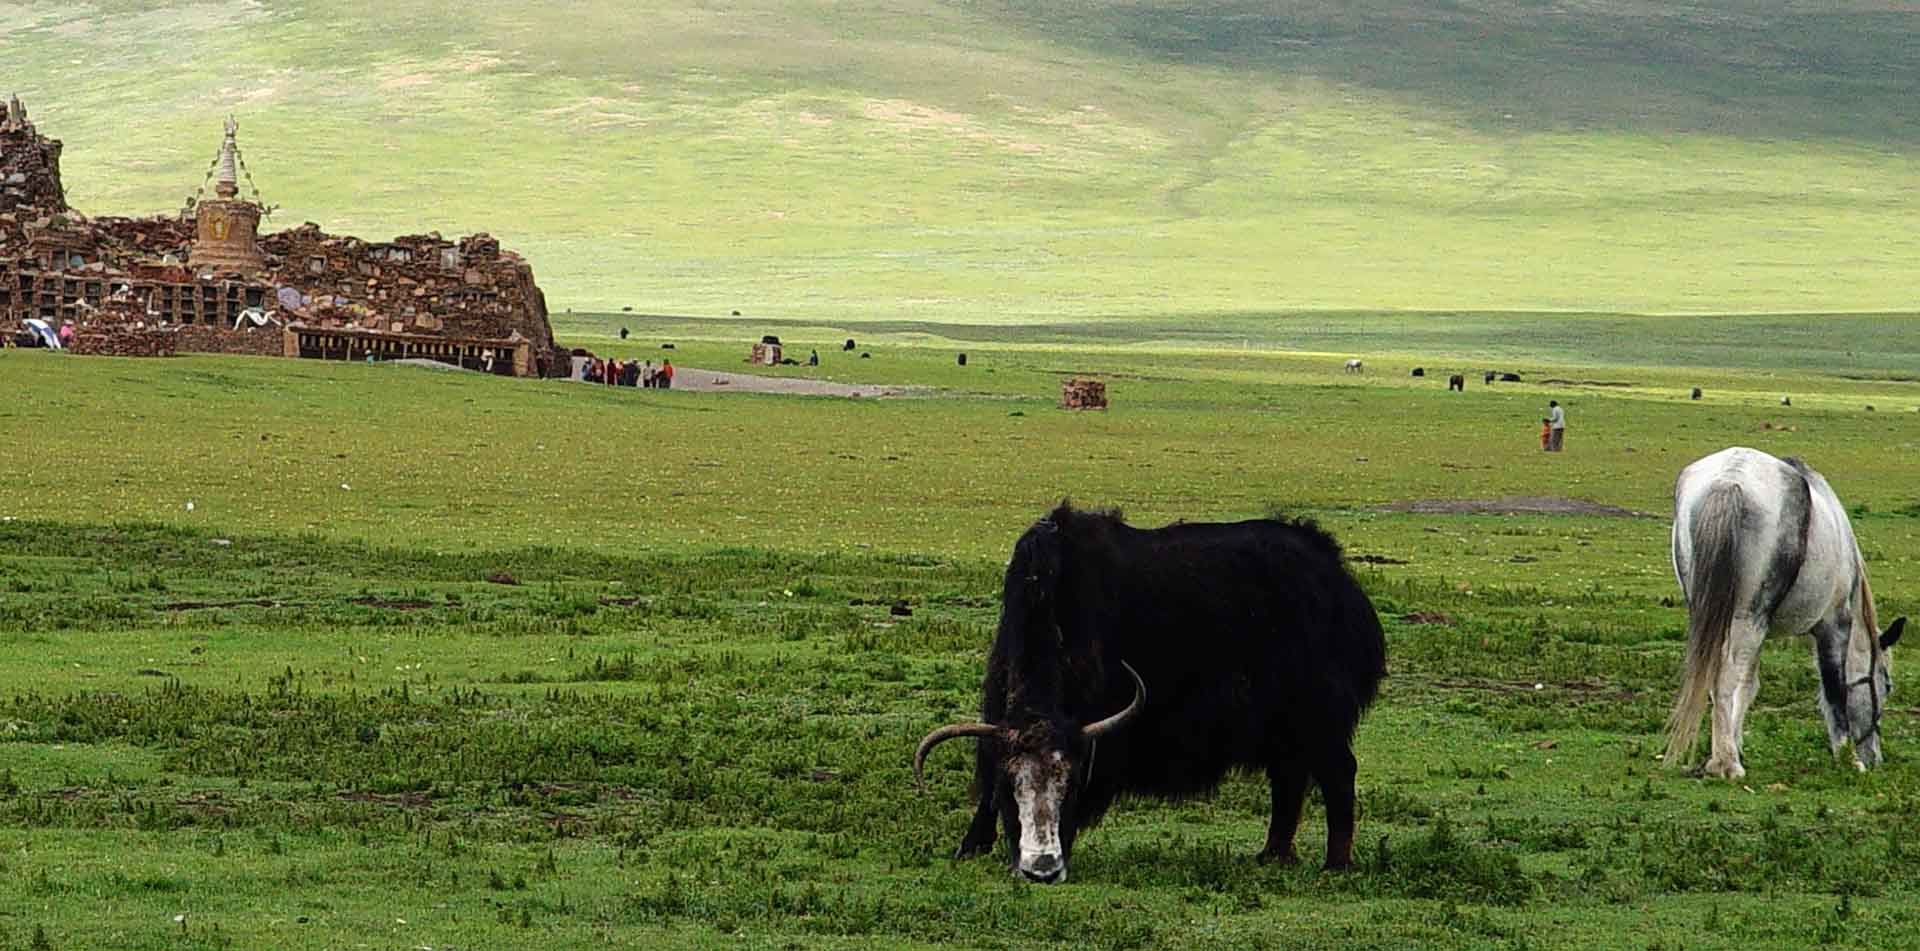 Asia China Shangri-La yak and horse grazing in a valley with ruins in background - luxury vacation destinations